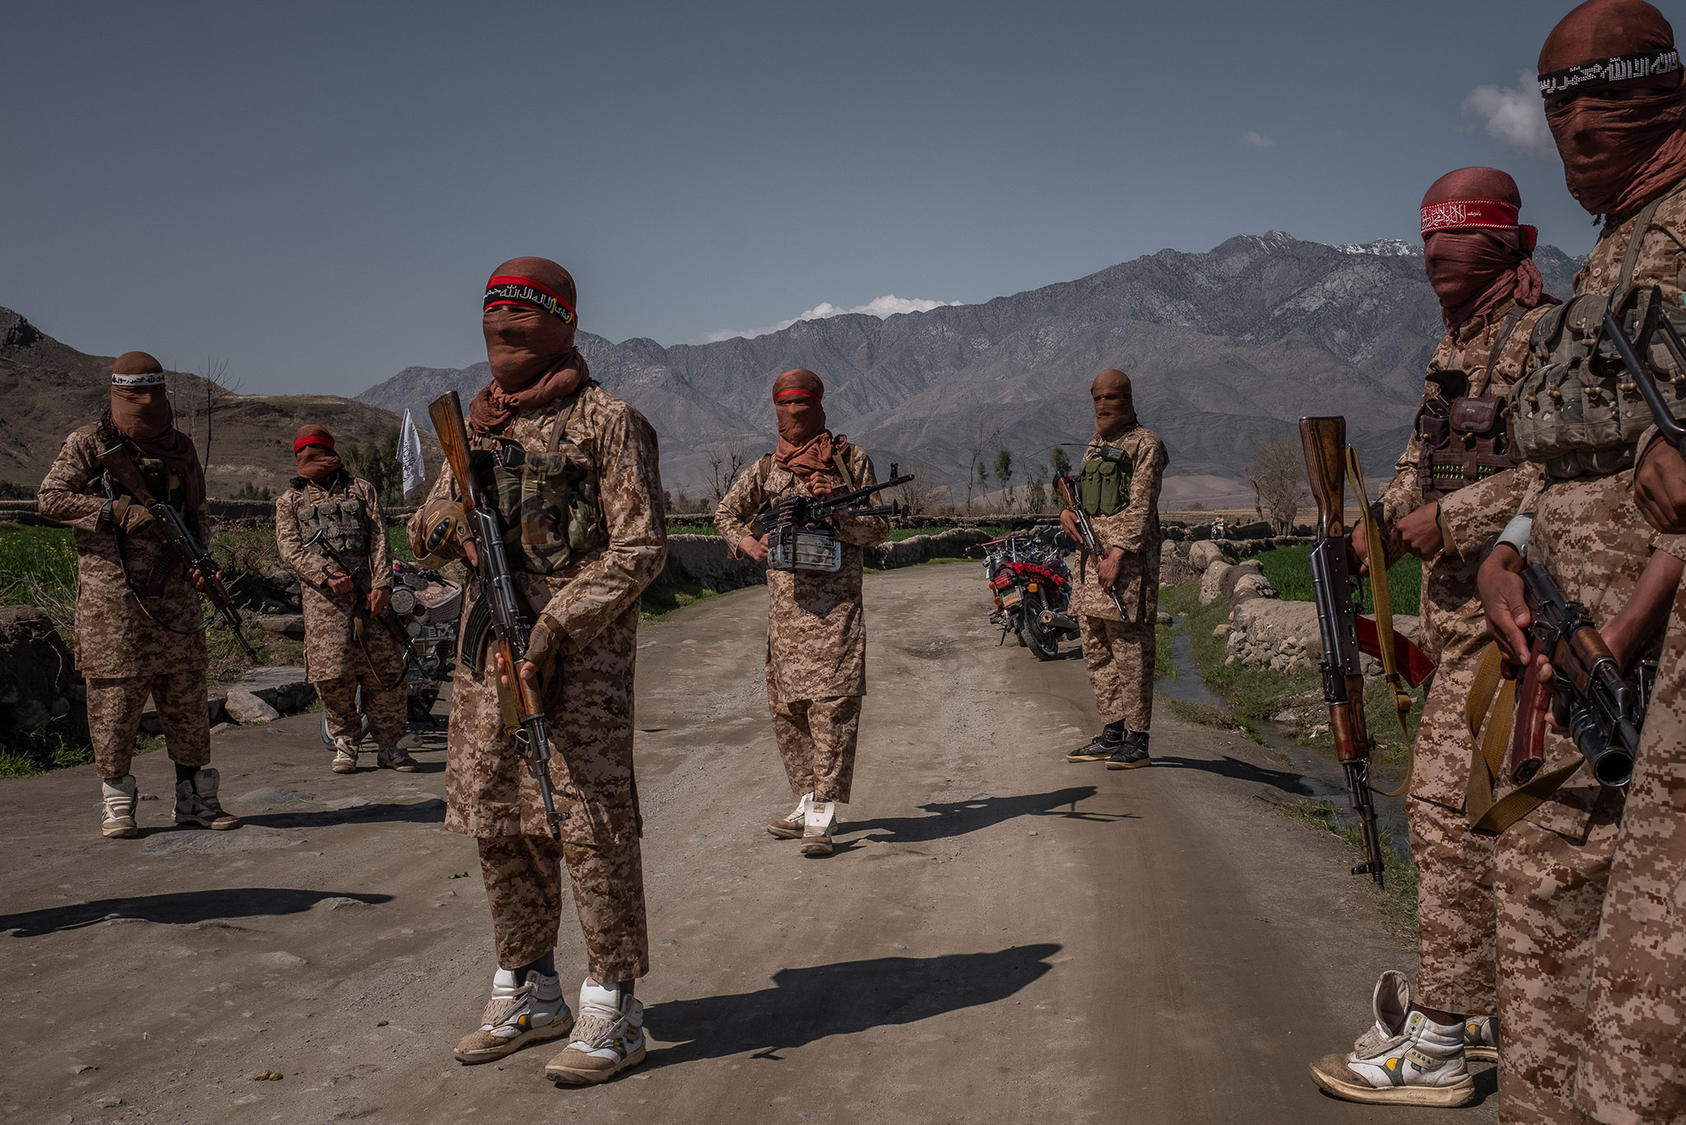 Members of a Taliban Red Unit, an elite force, in the Alingar District of Laghman Province in Afghanistan, March 13, 2020. (Jim Huylebroek/The New York Times)